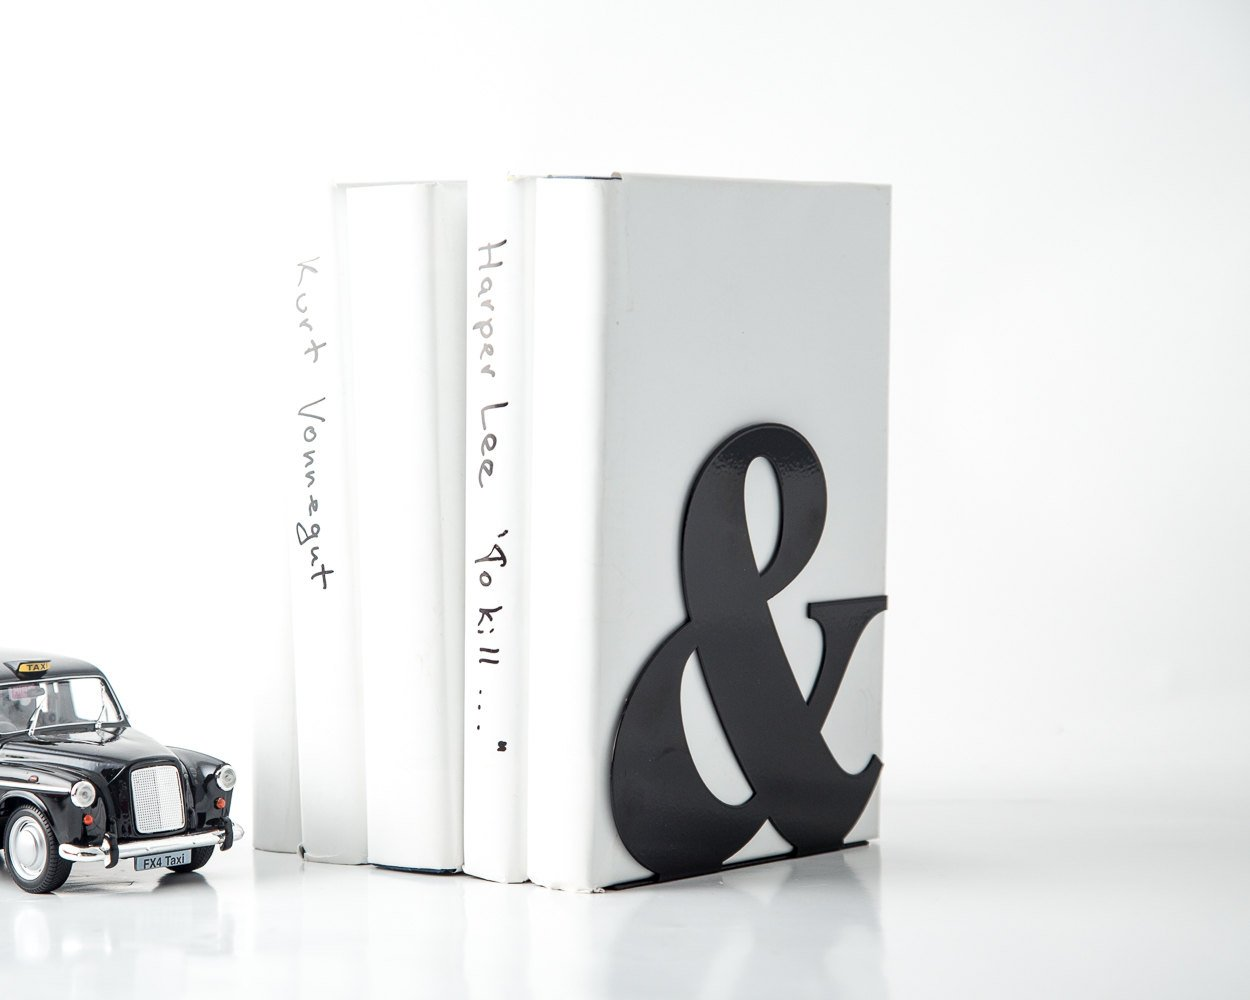 Metal Bookend -&- Ampersand - functional decor for modern home by Atelier Article - Design Atelier Article